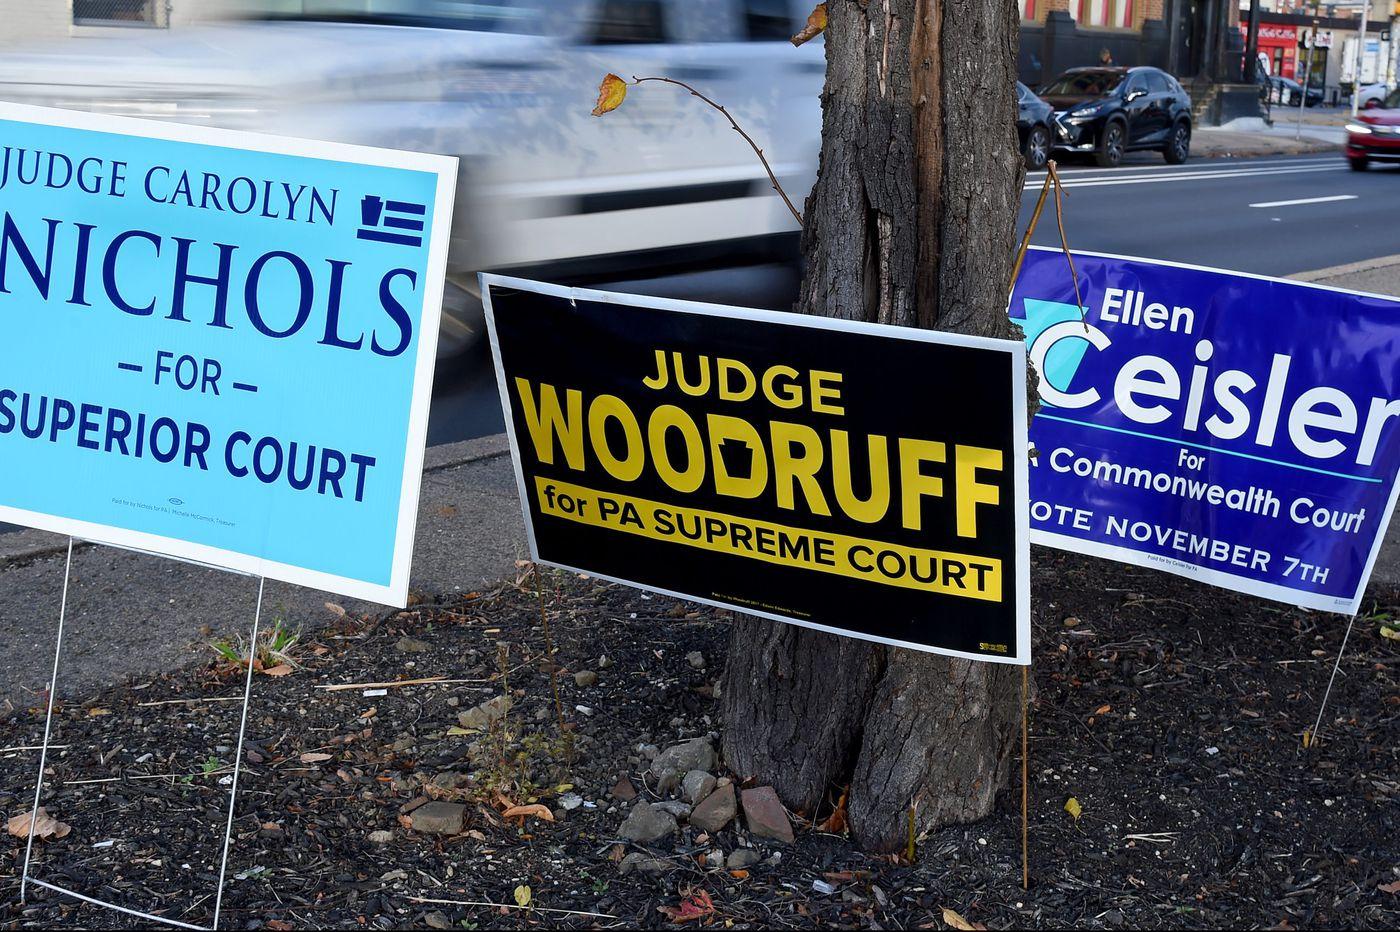 Close down the circus: Replace judicial elections with merit selection | Editorial